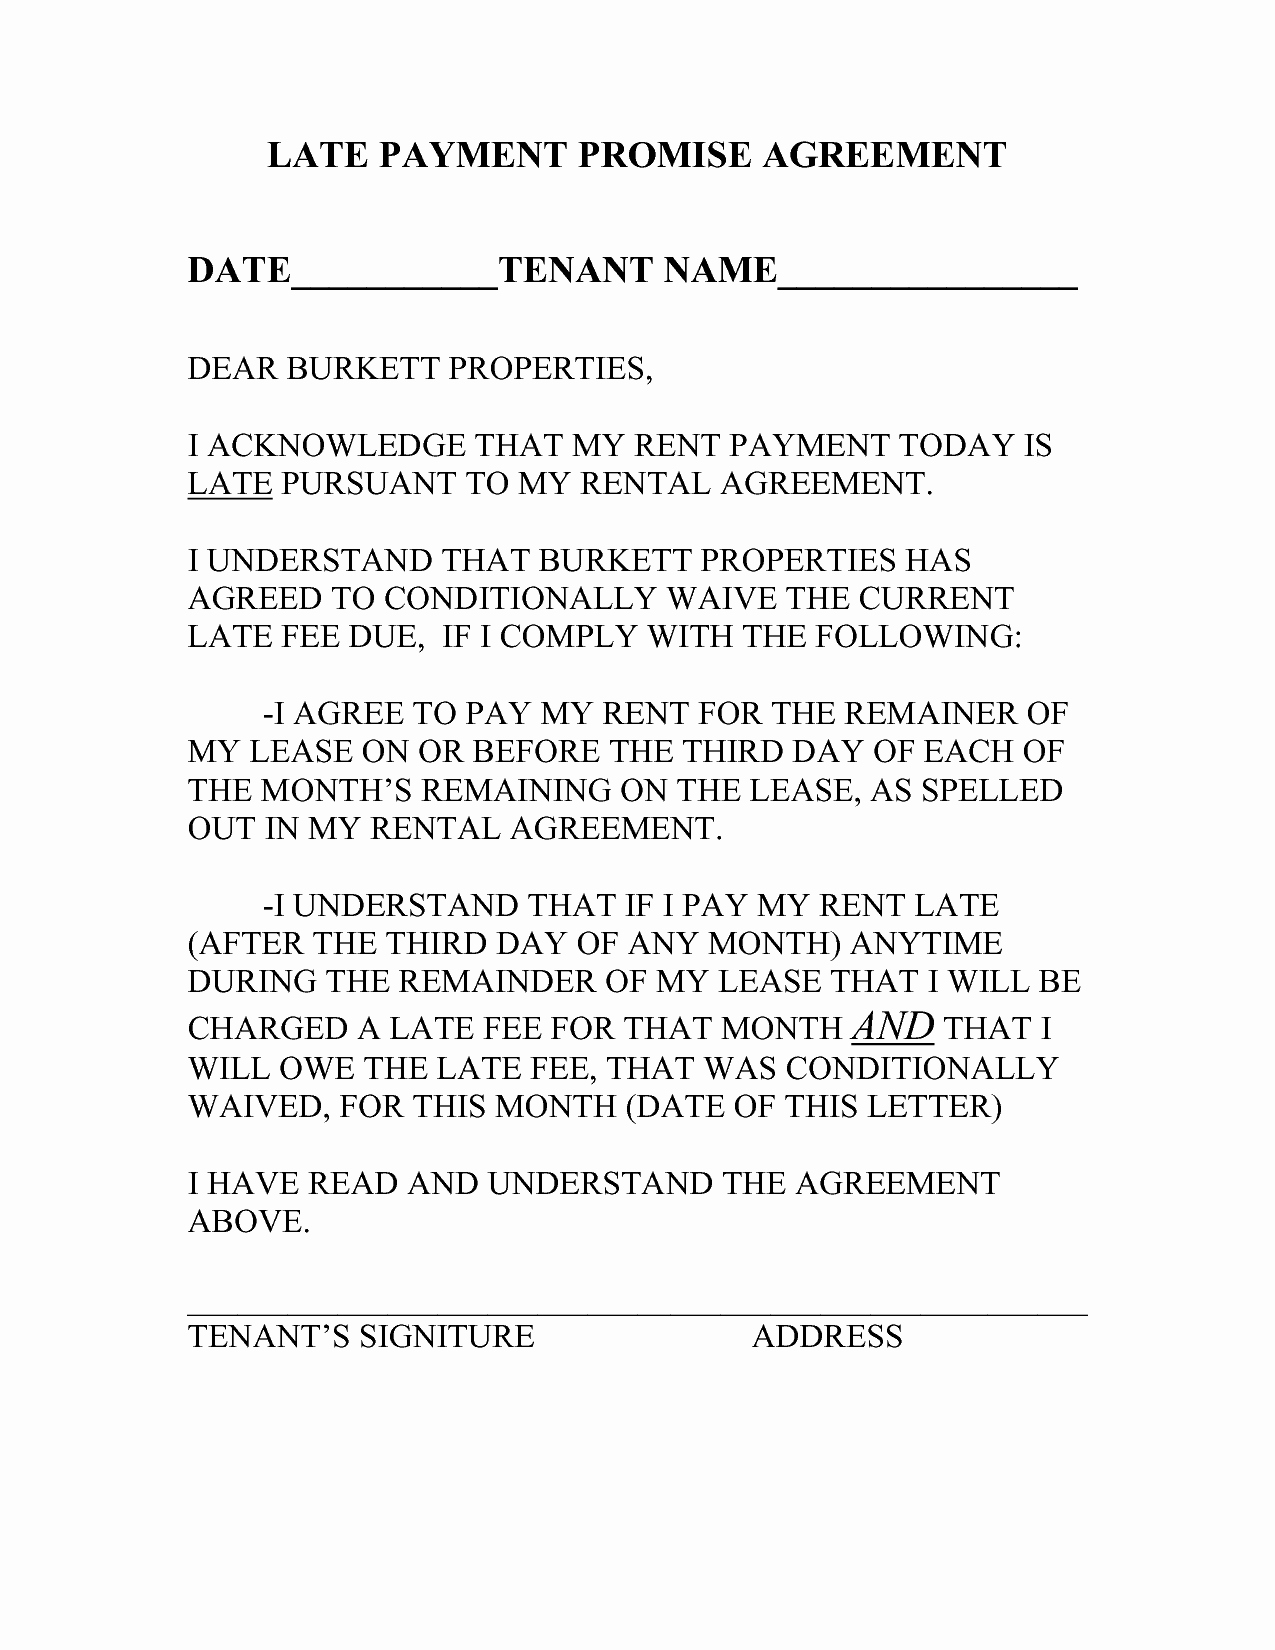 Late Payment Notice Template Awesome Late Rent Payment Notice Letter Google Search